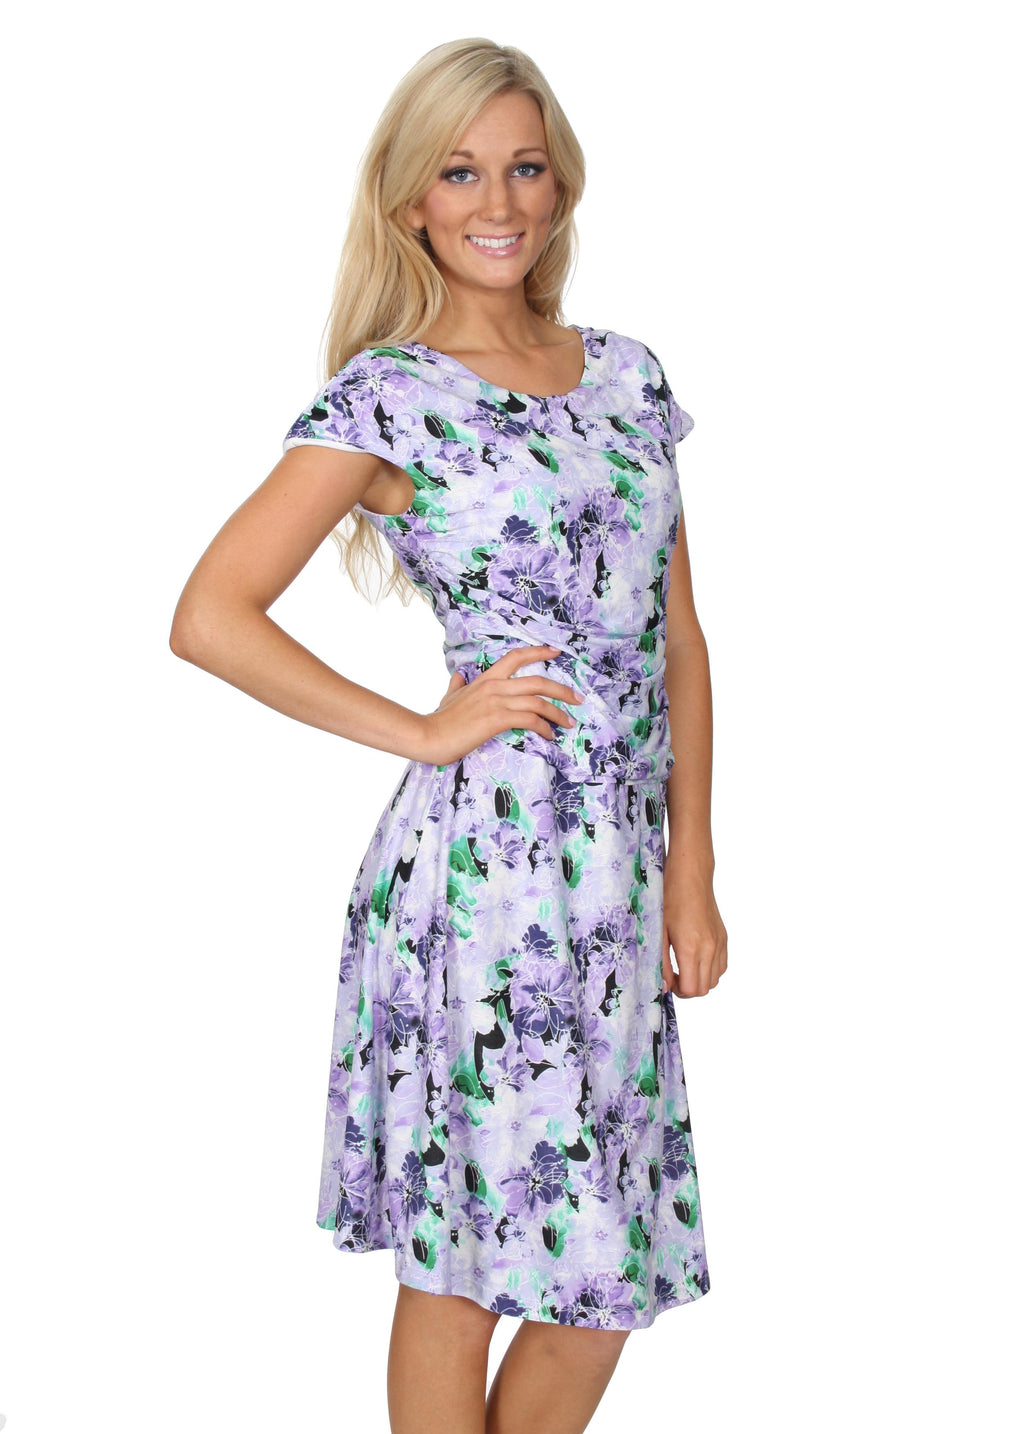 DRESS 4947 - FTX Clothing